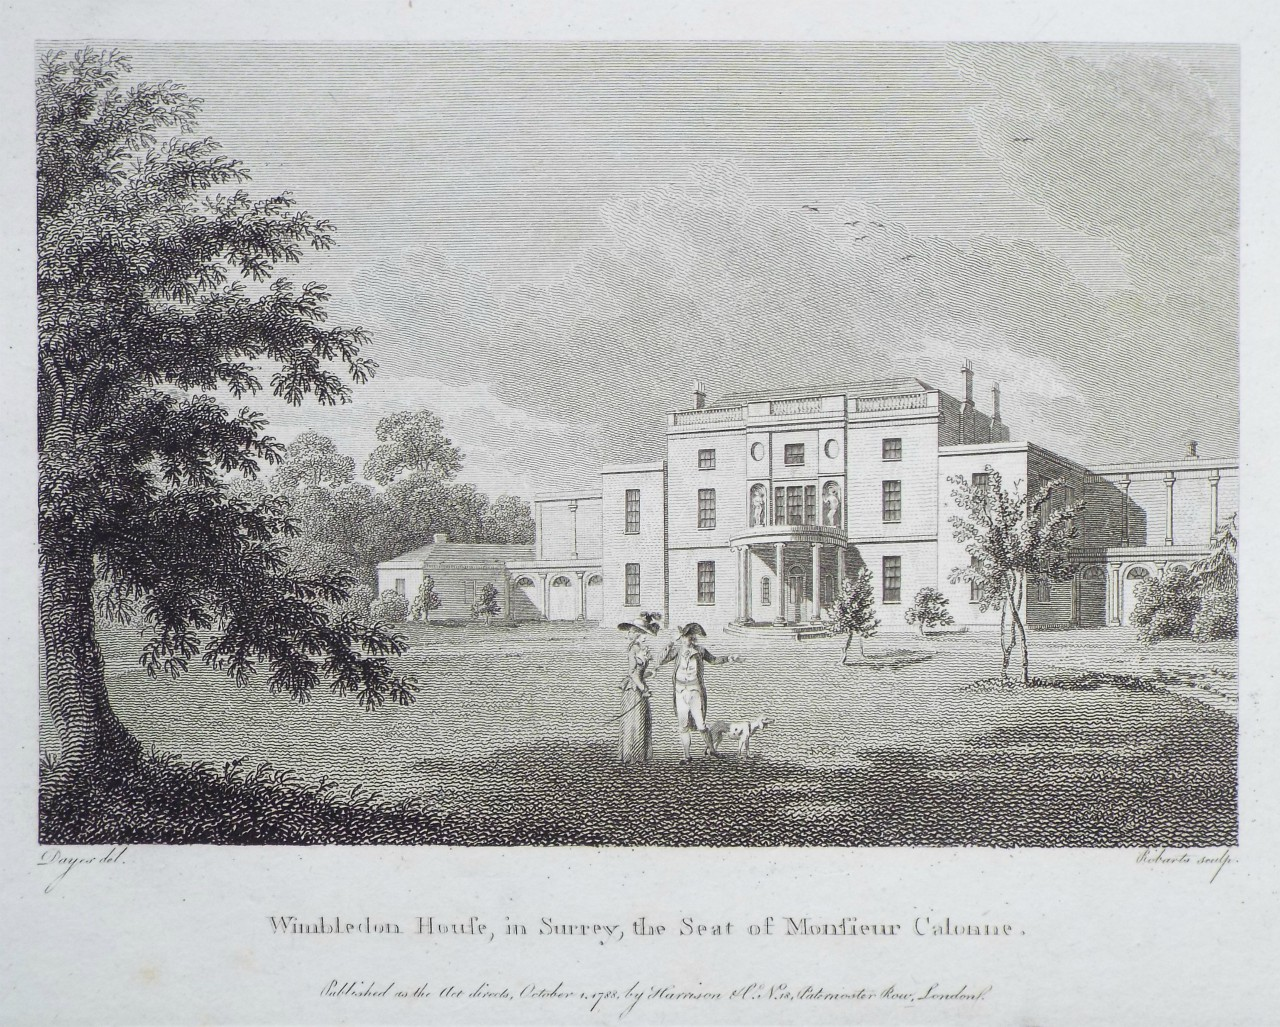 Print - Wimbledon House, in Surrey, the Seat of Monsieur Calonne. -